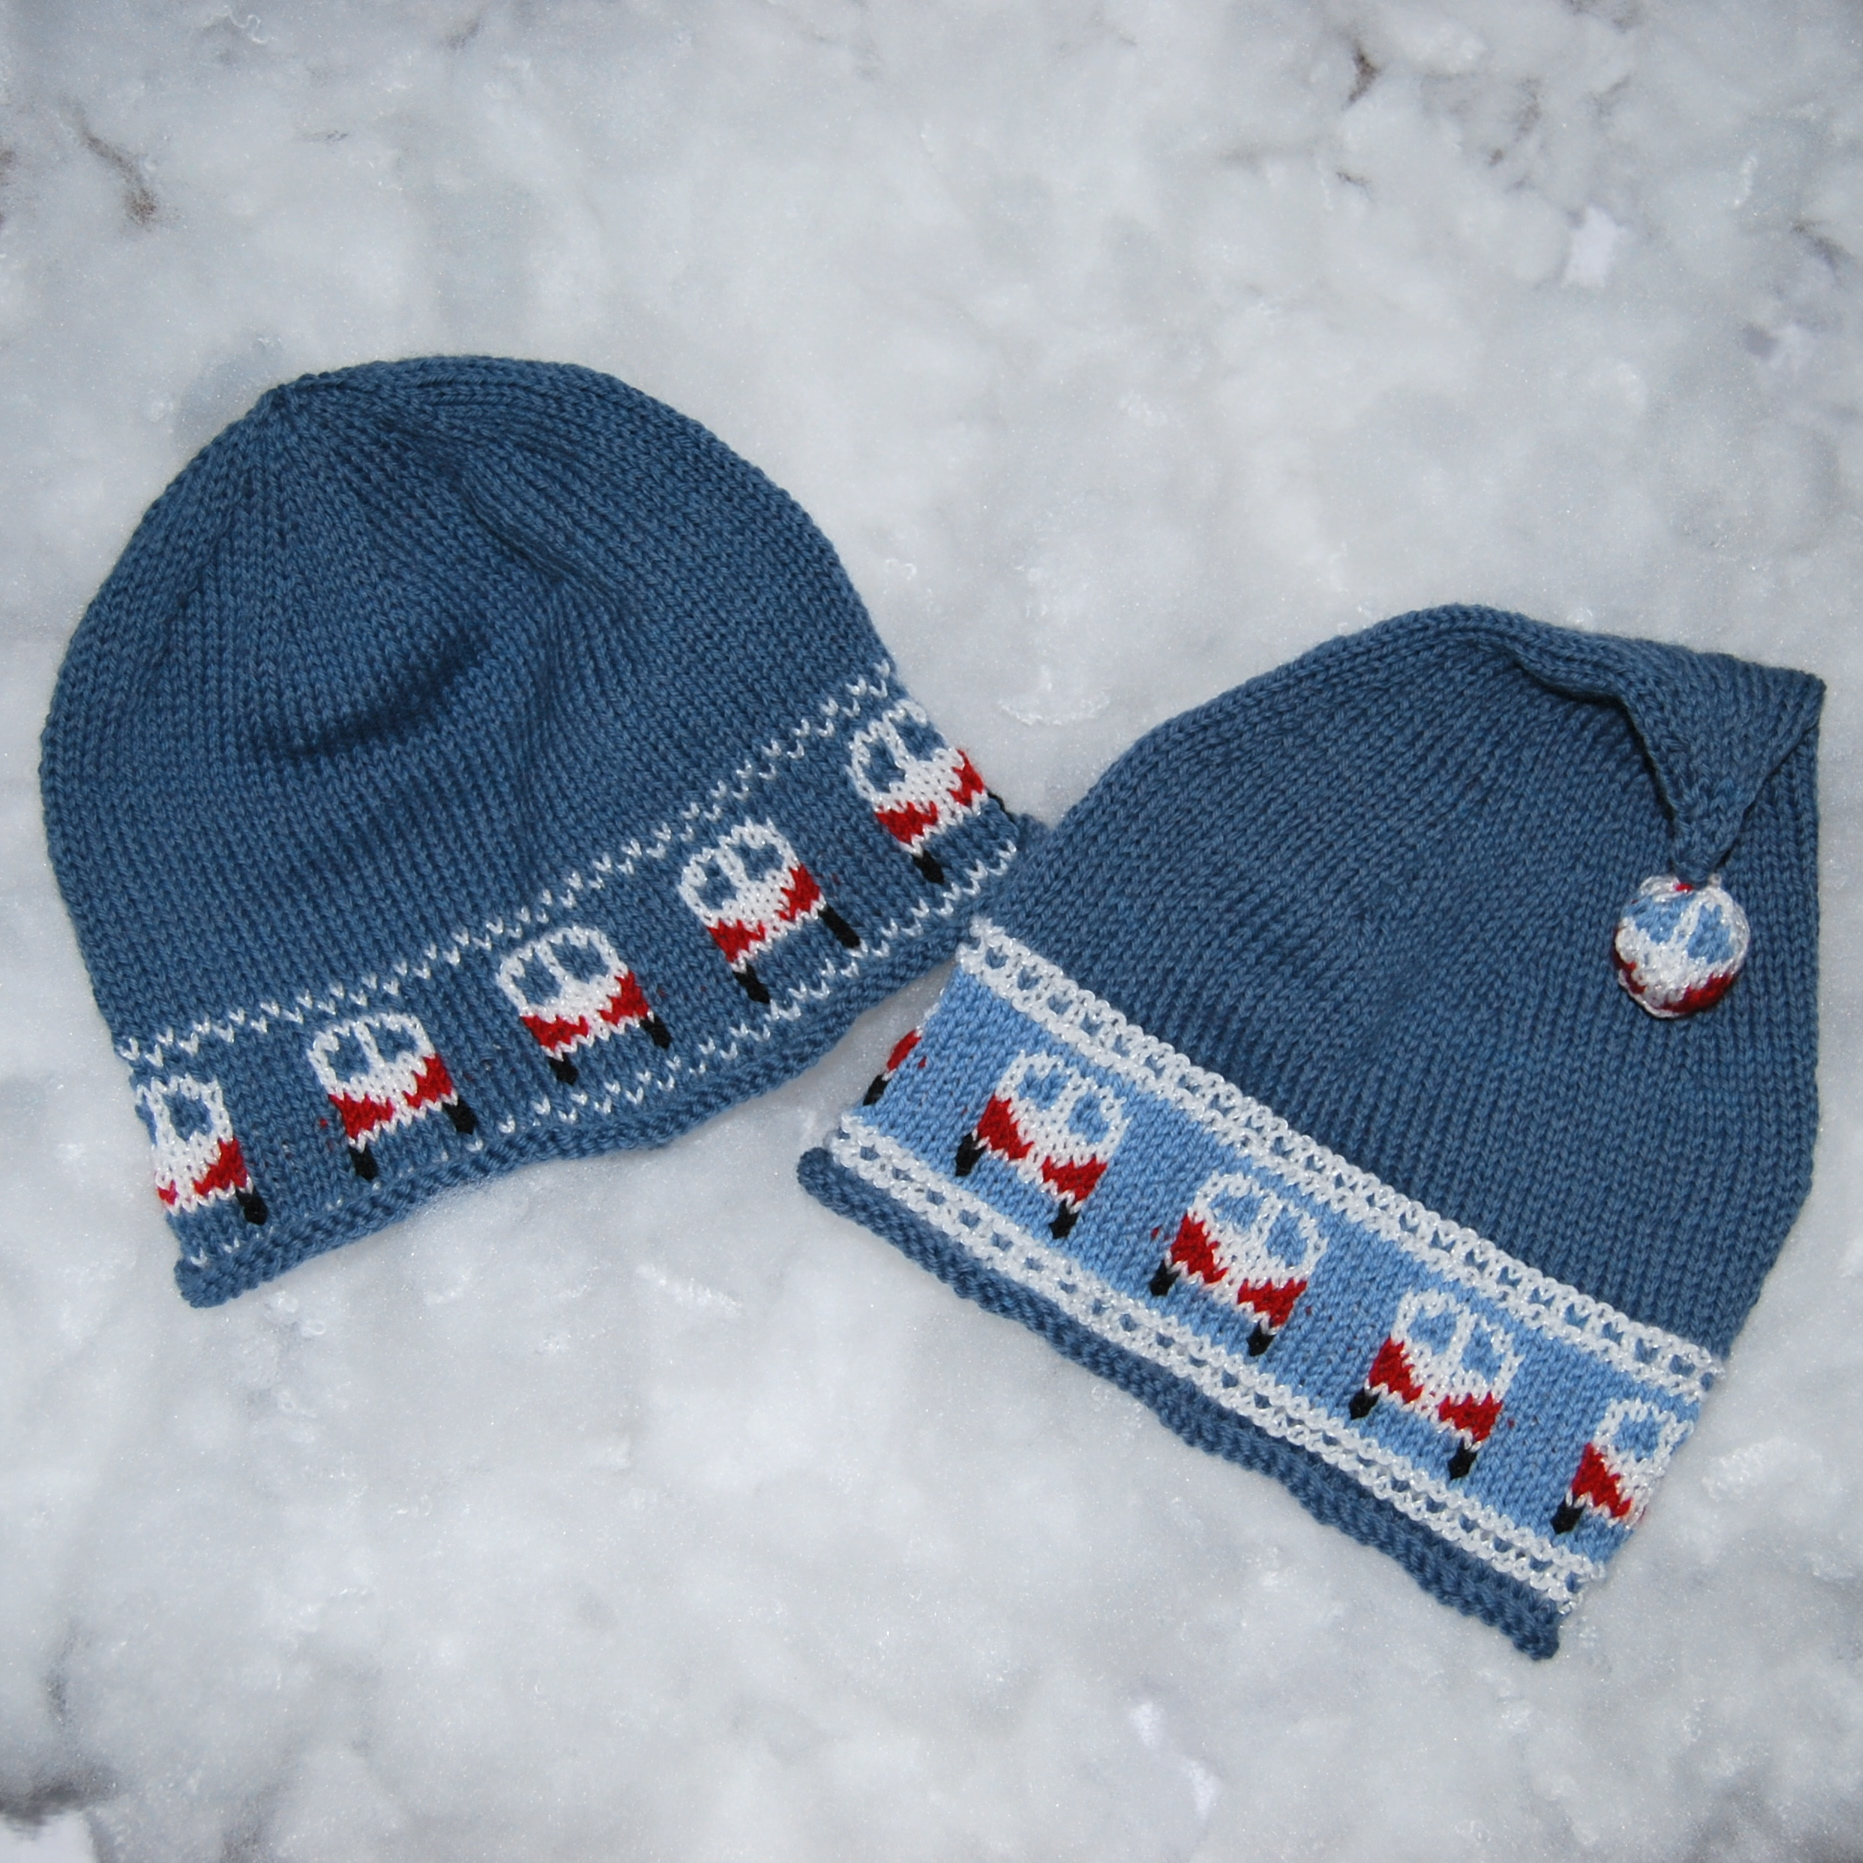 PDF Knitting Pattern for a Beanie   Bobble Hat with Campervan Borders f5538f59bb8